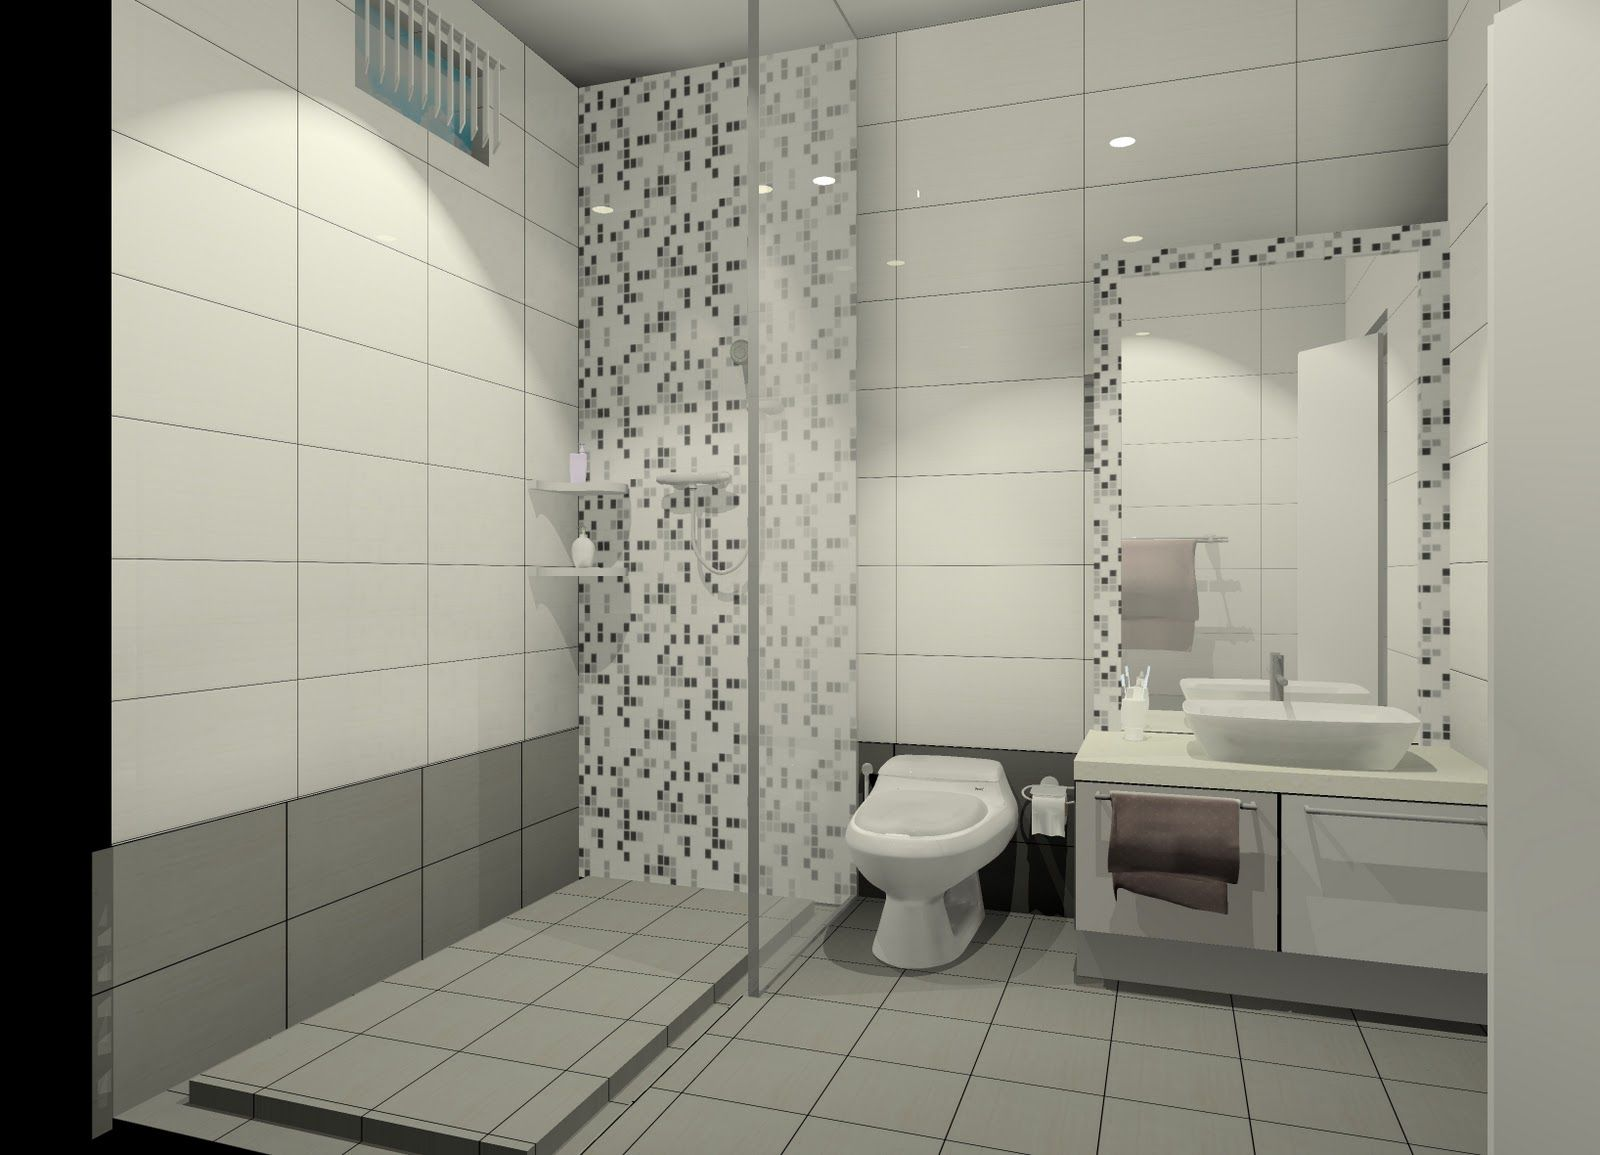 toilet tiles design | Toilet ideas | Pinterest | Toilet tiles design ...